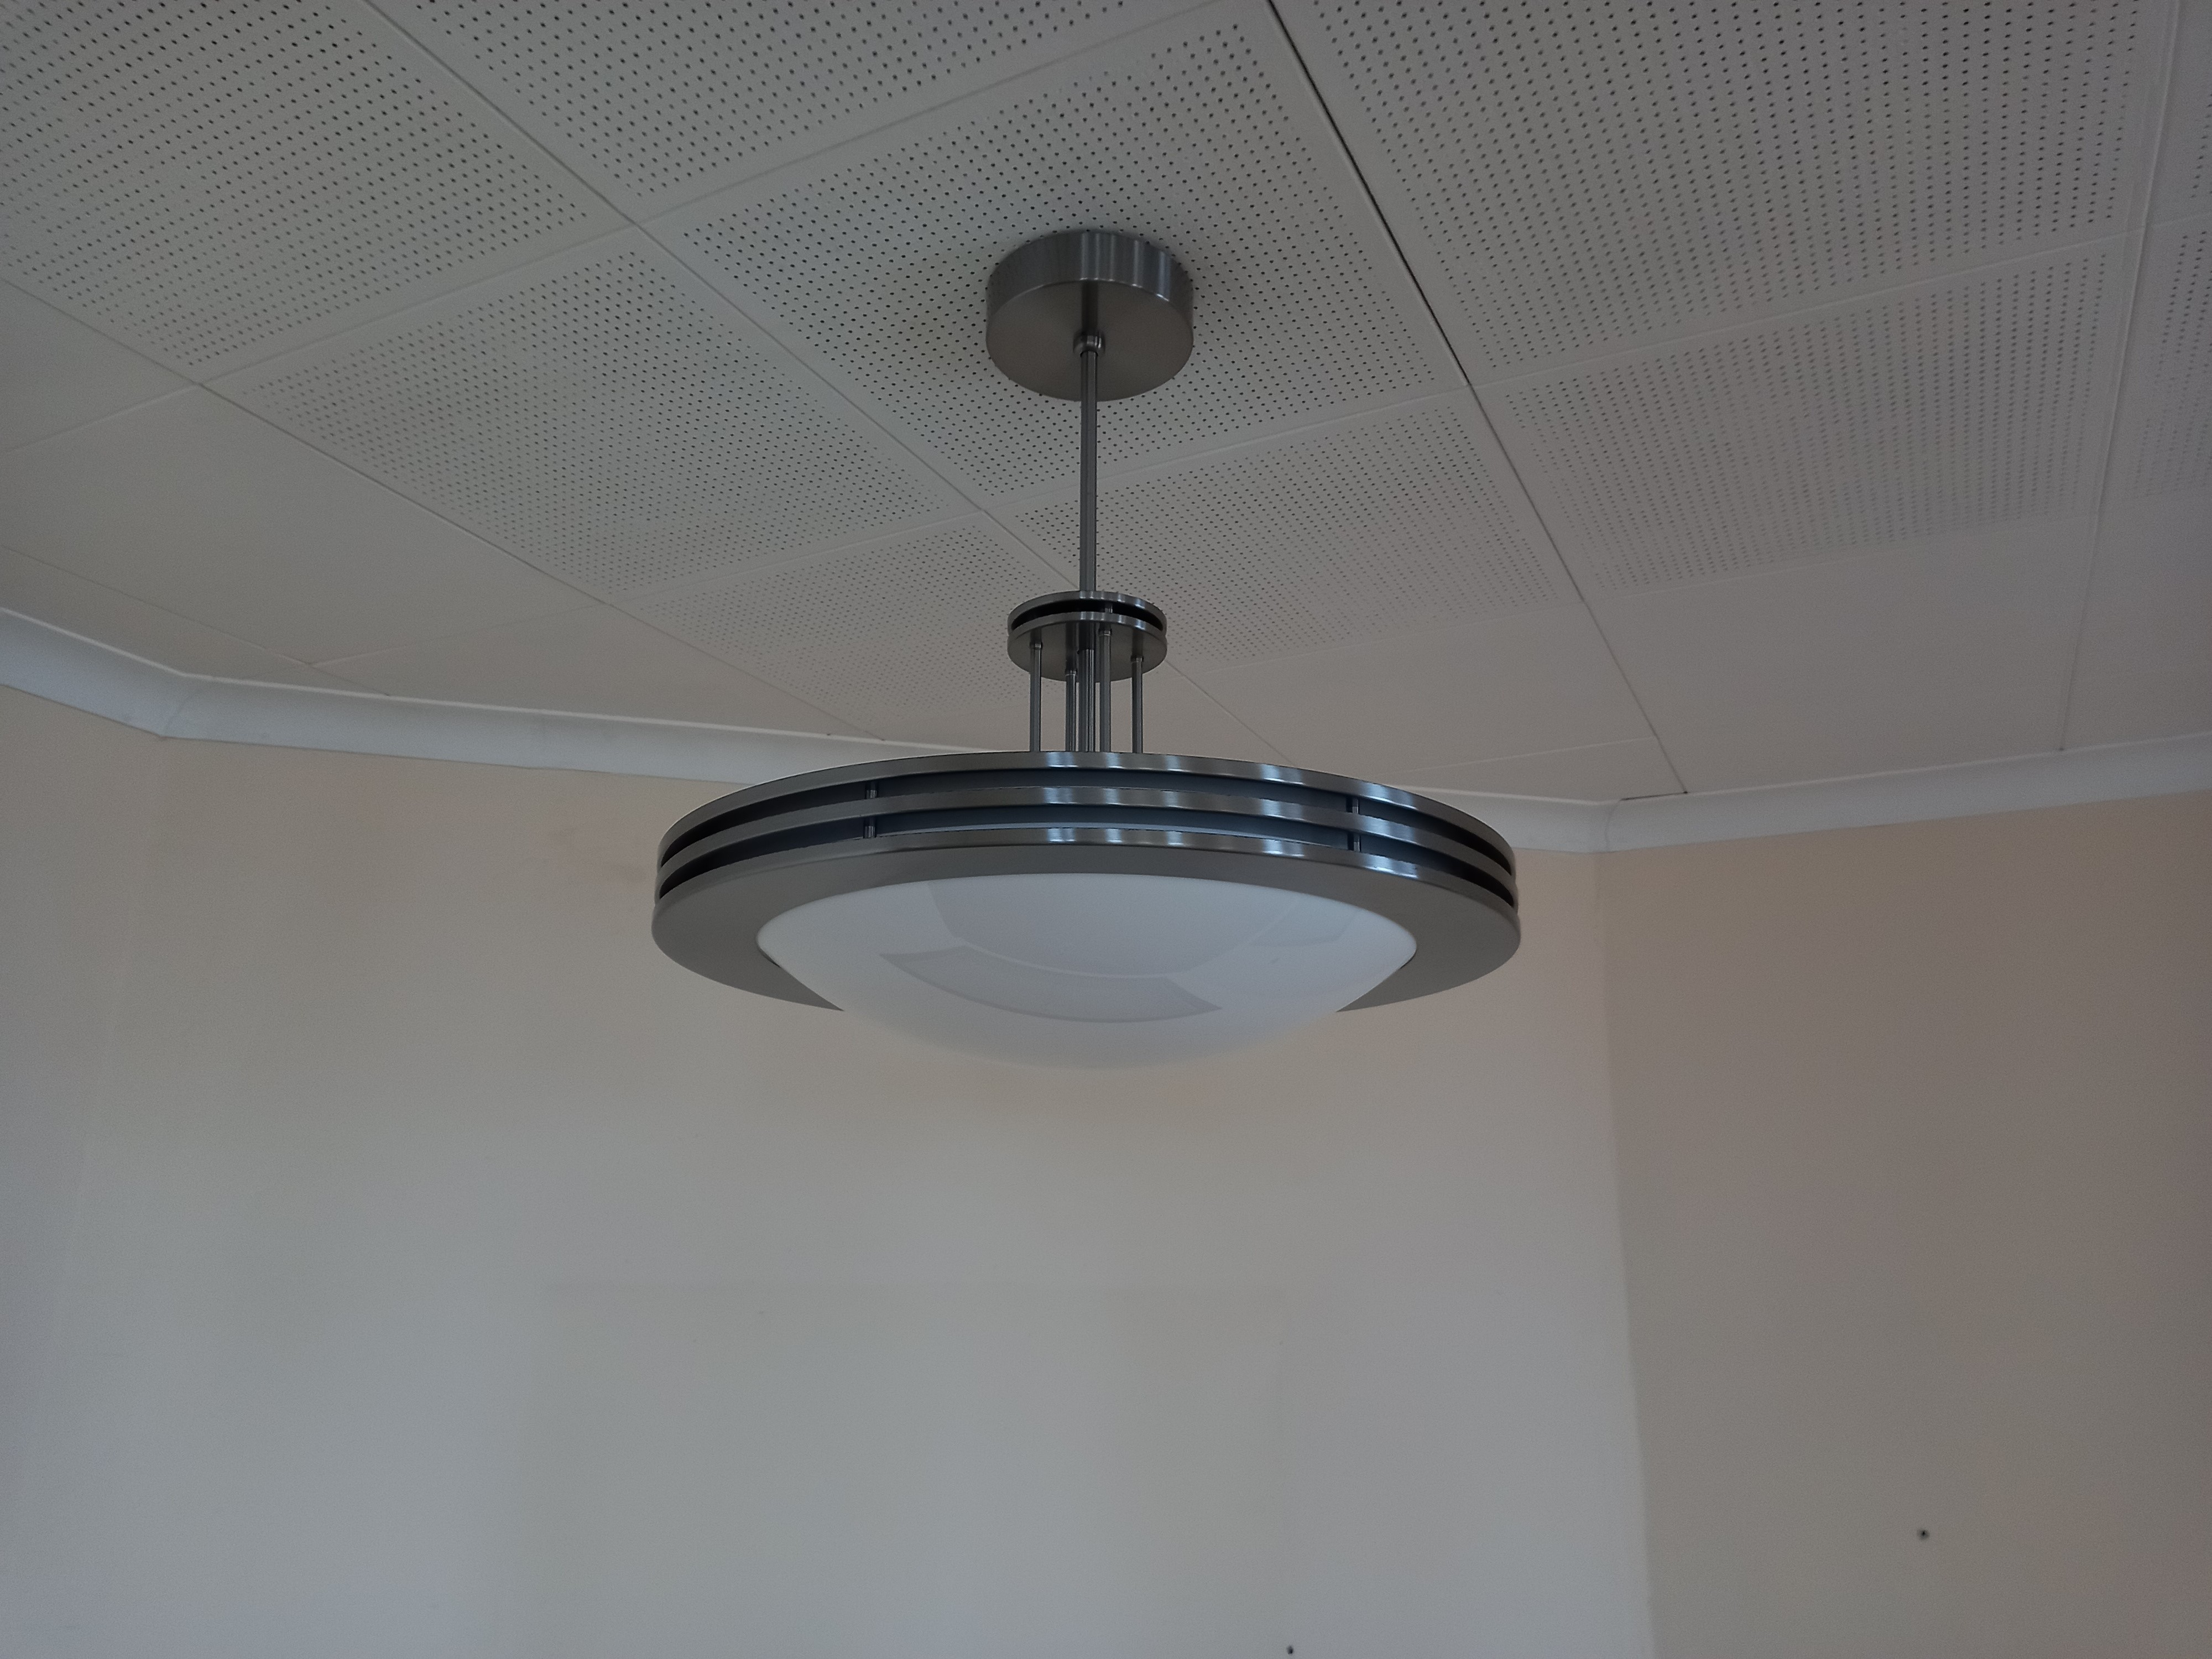 An Art deco style chrome hanging ceiling light fitting